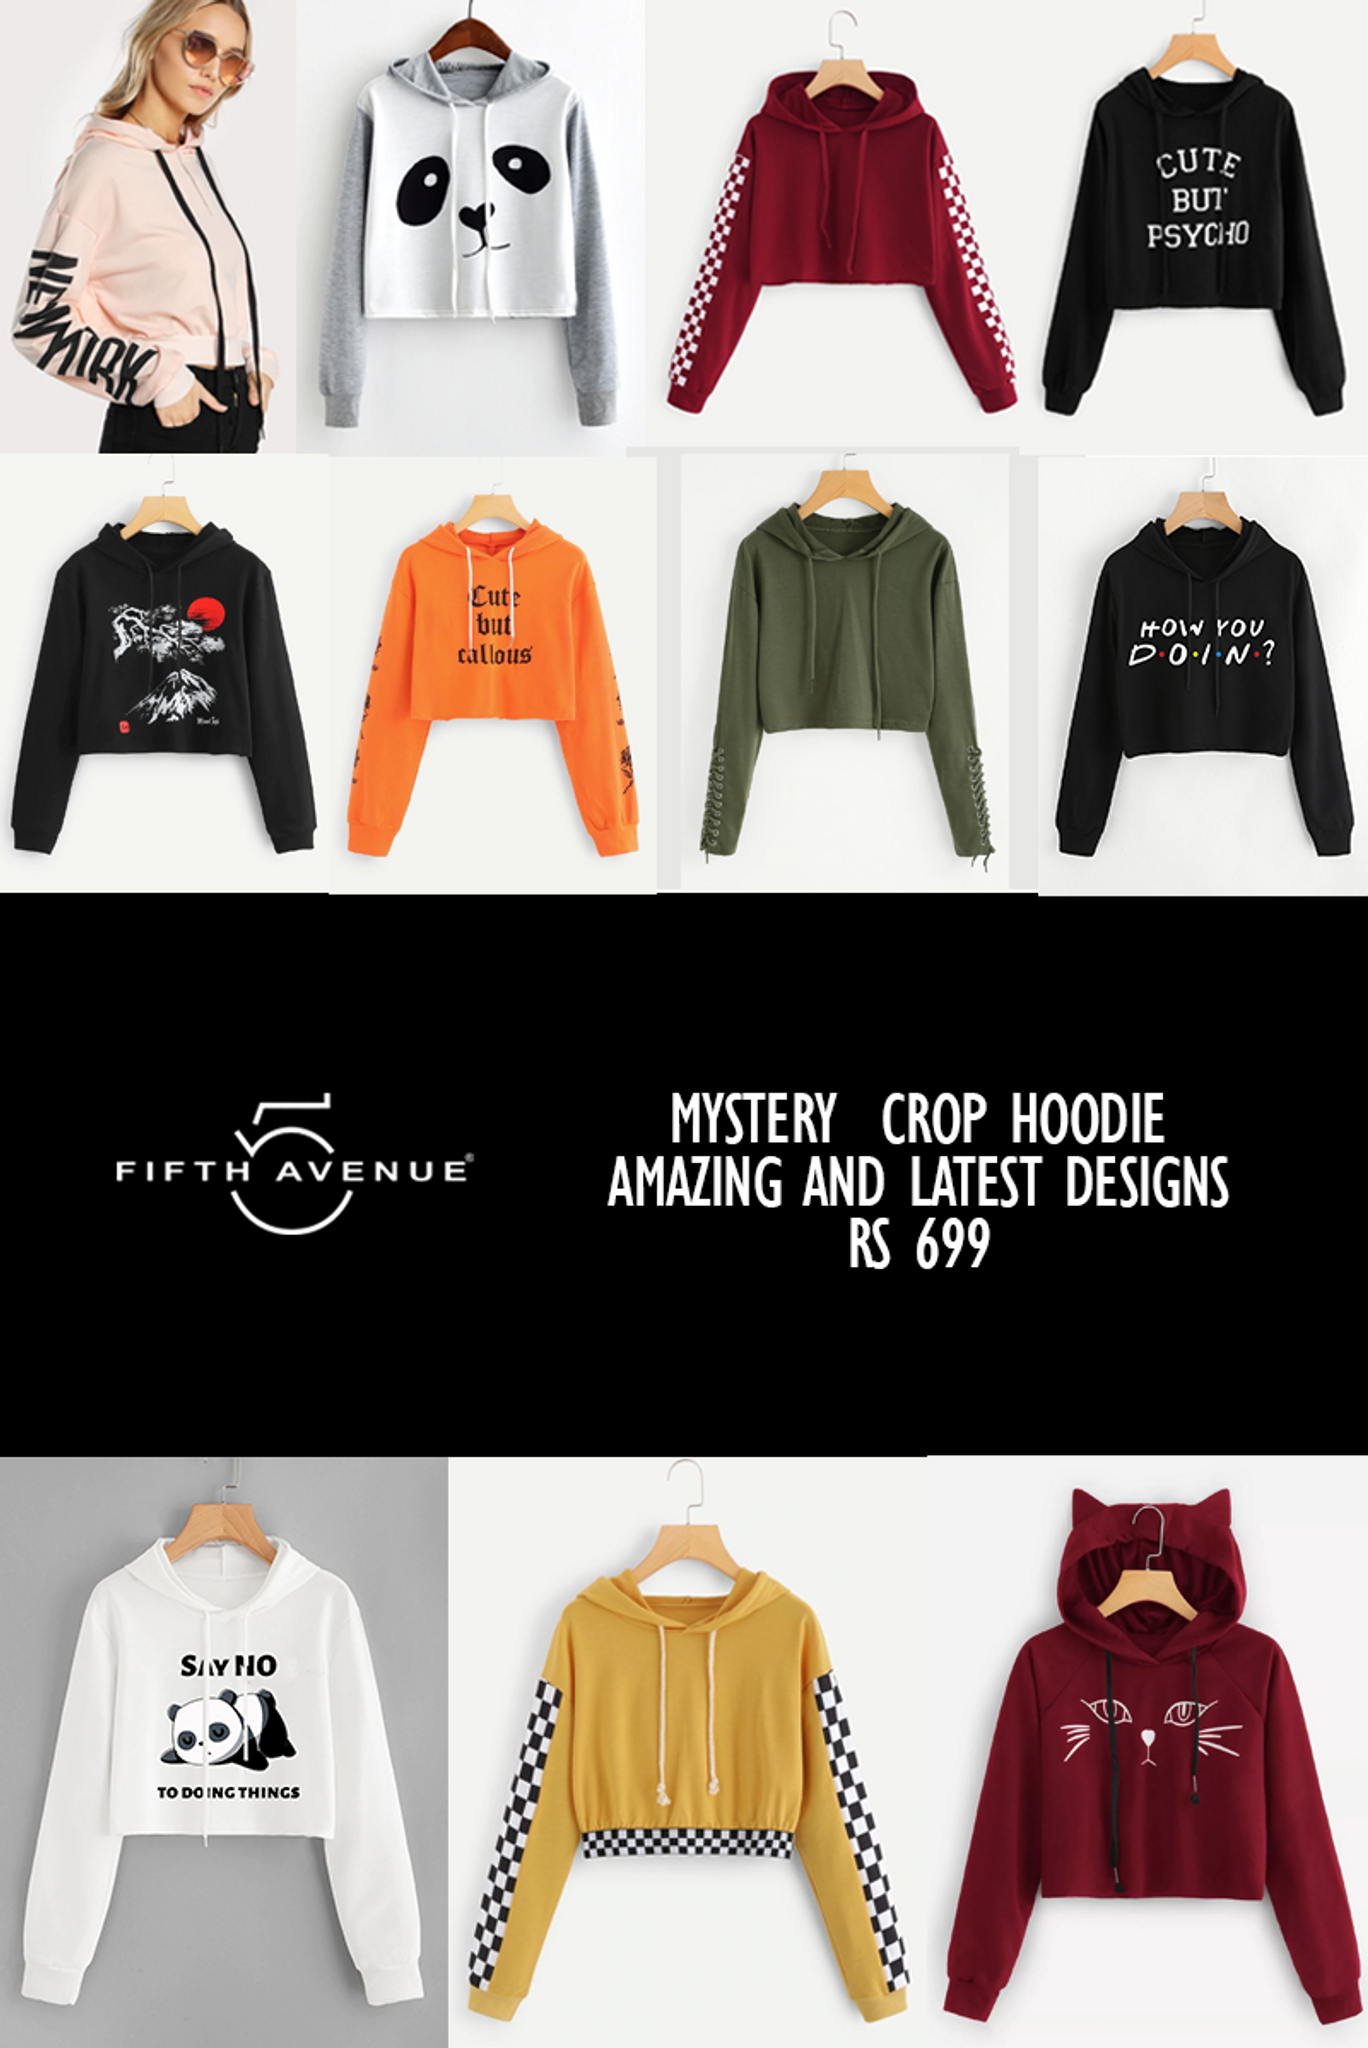 Fifth Avenue Women's Mystery Mania - Mystery Crop Hoodie